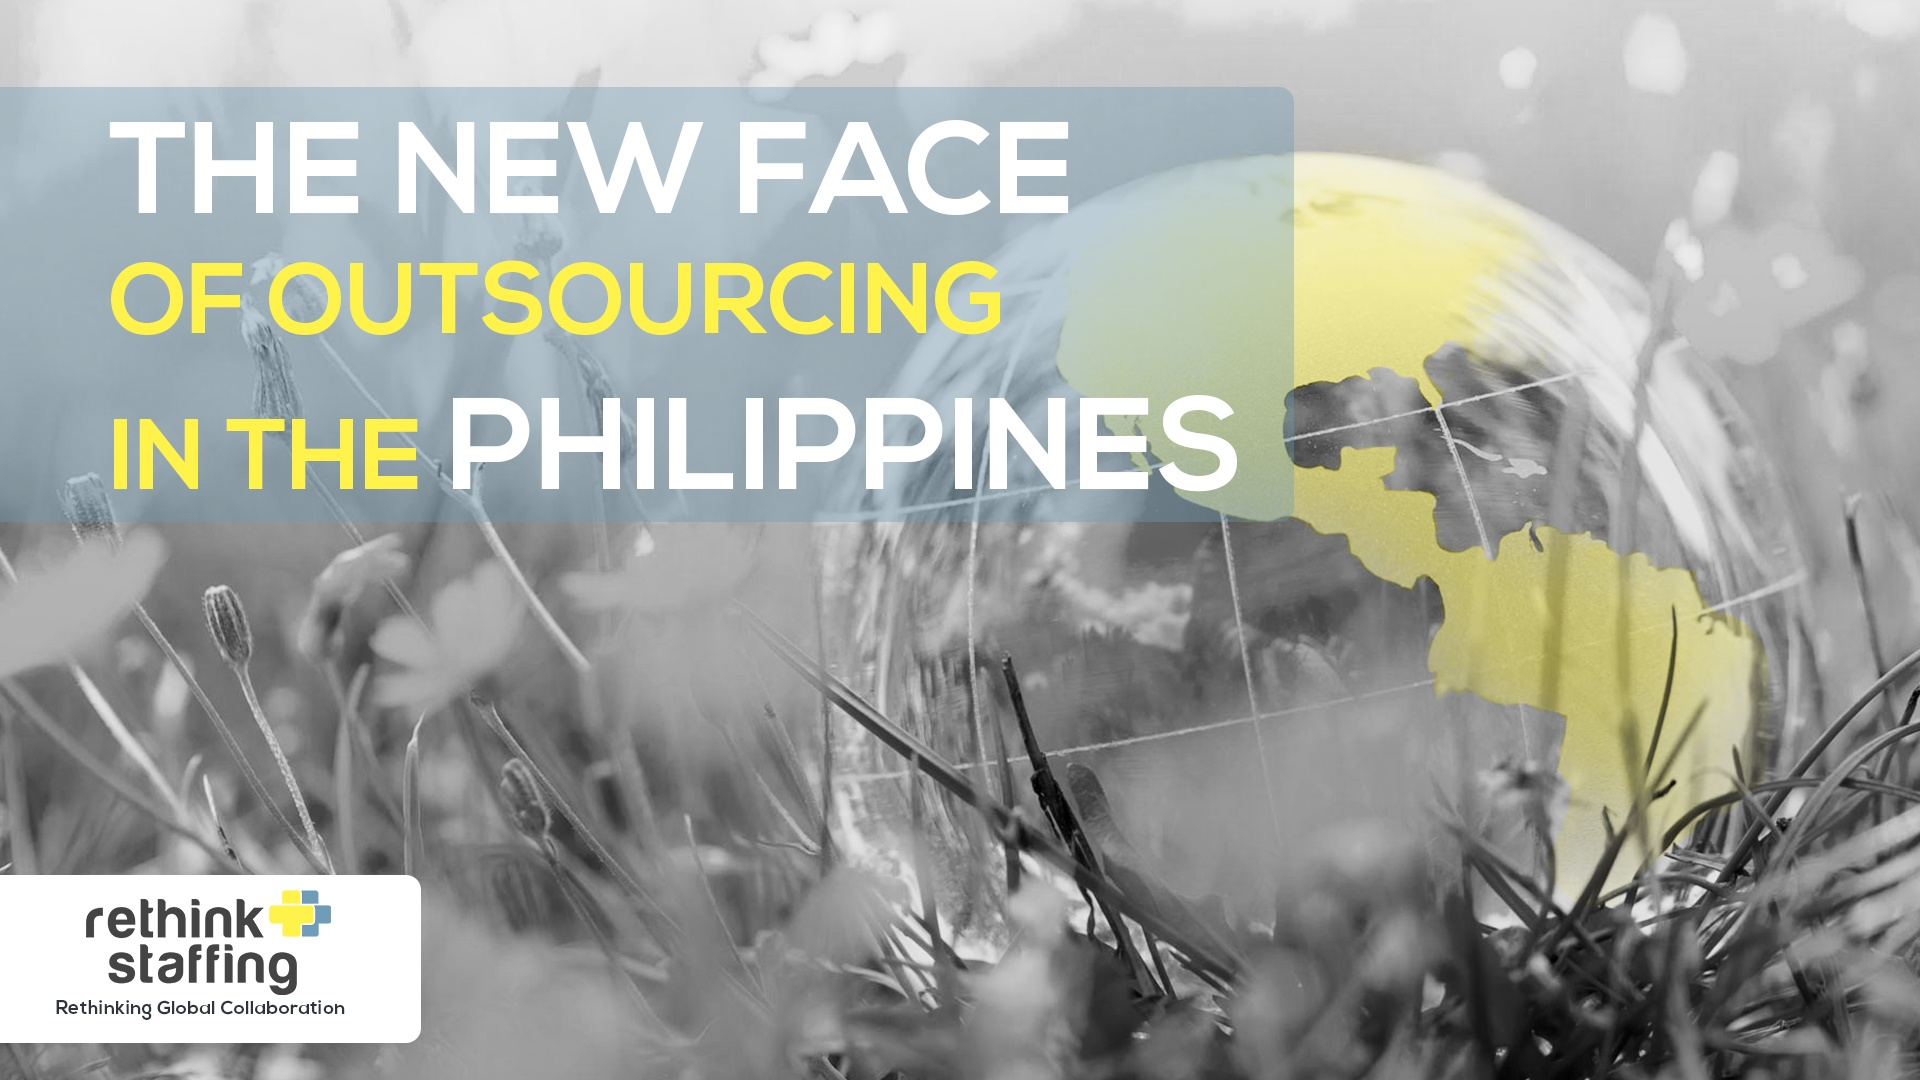 The New Face of Outsourcing in the Philippines